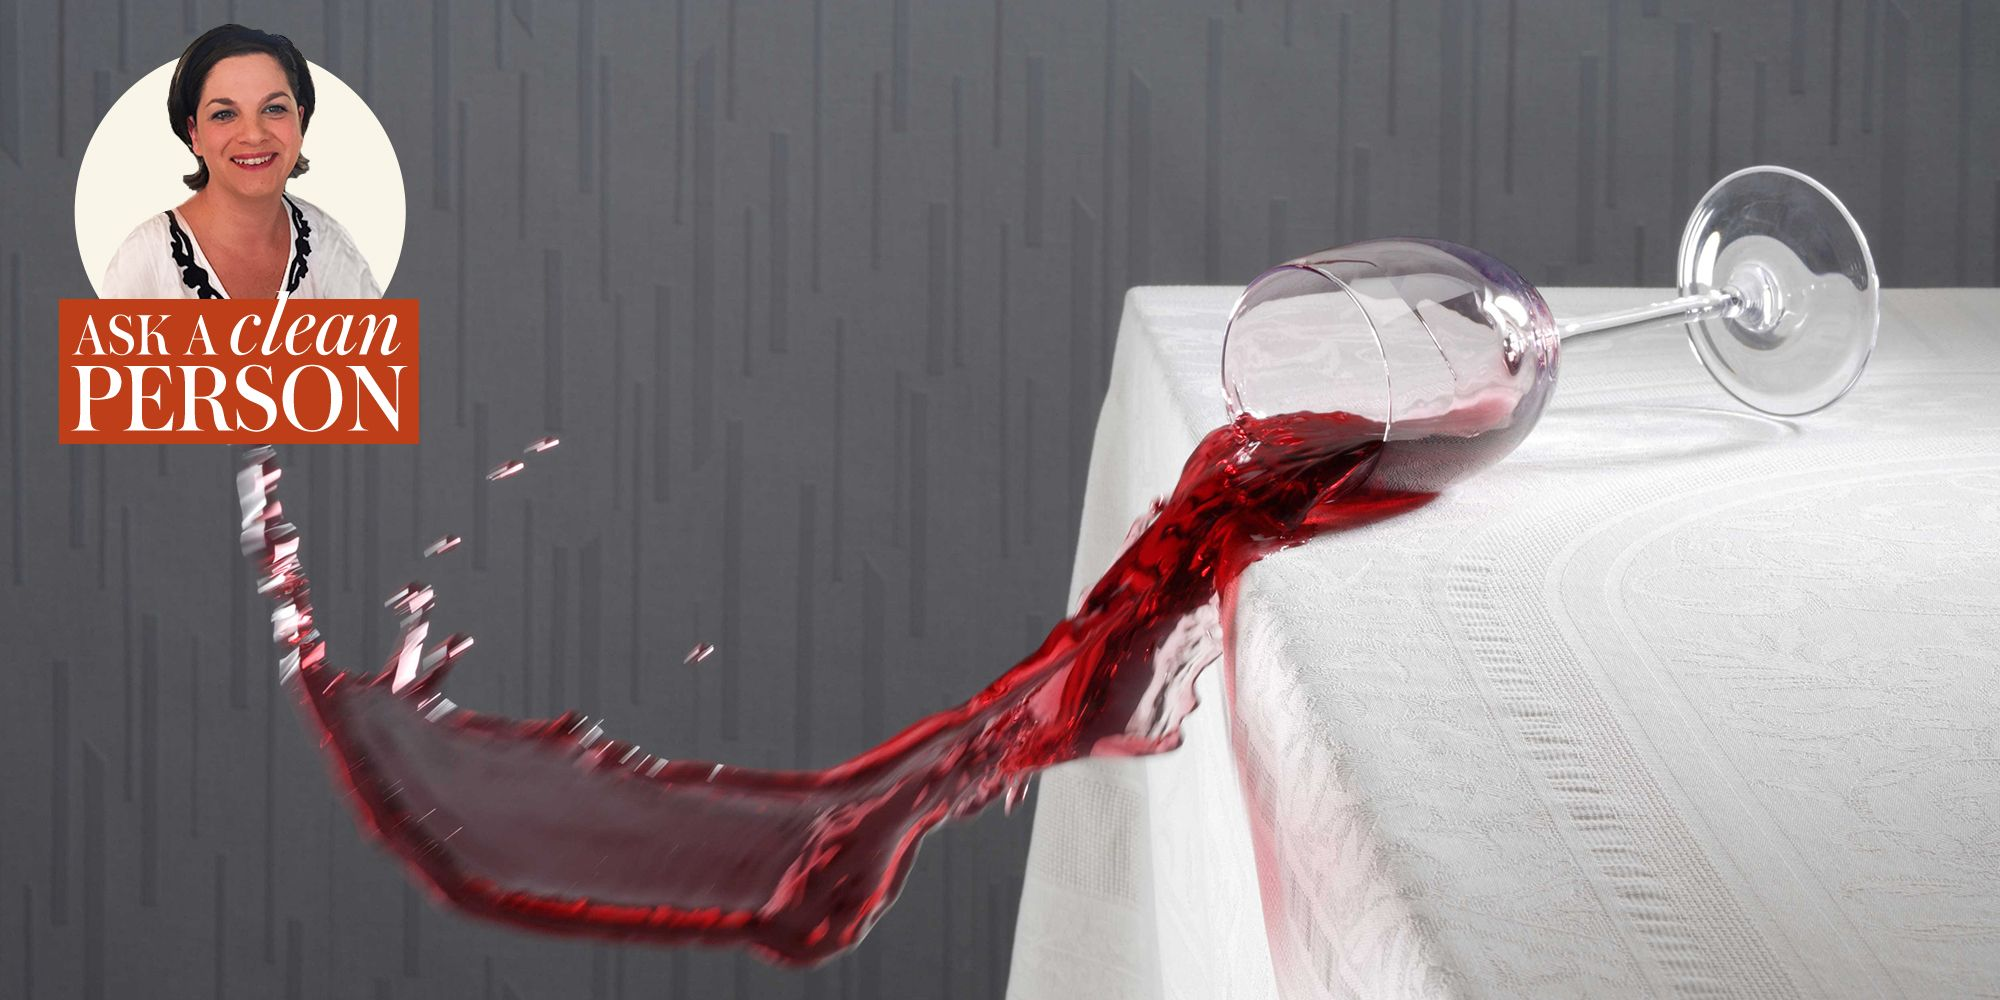 How To Clean Table Linens Remove Red Wine Stains - How To Remove Old White Heat Stains From Tablecloths